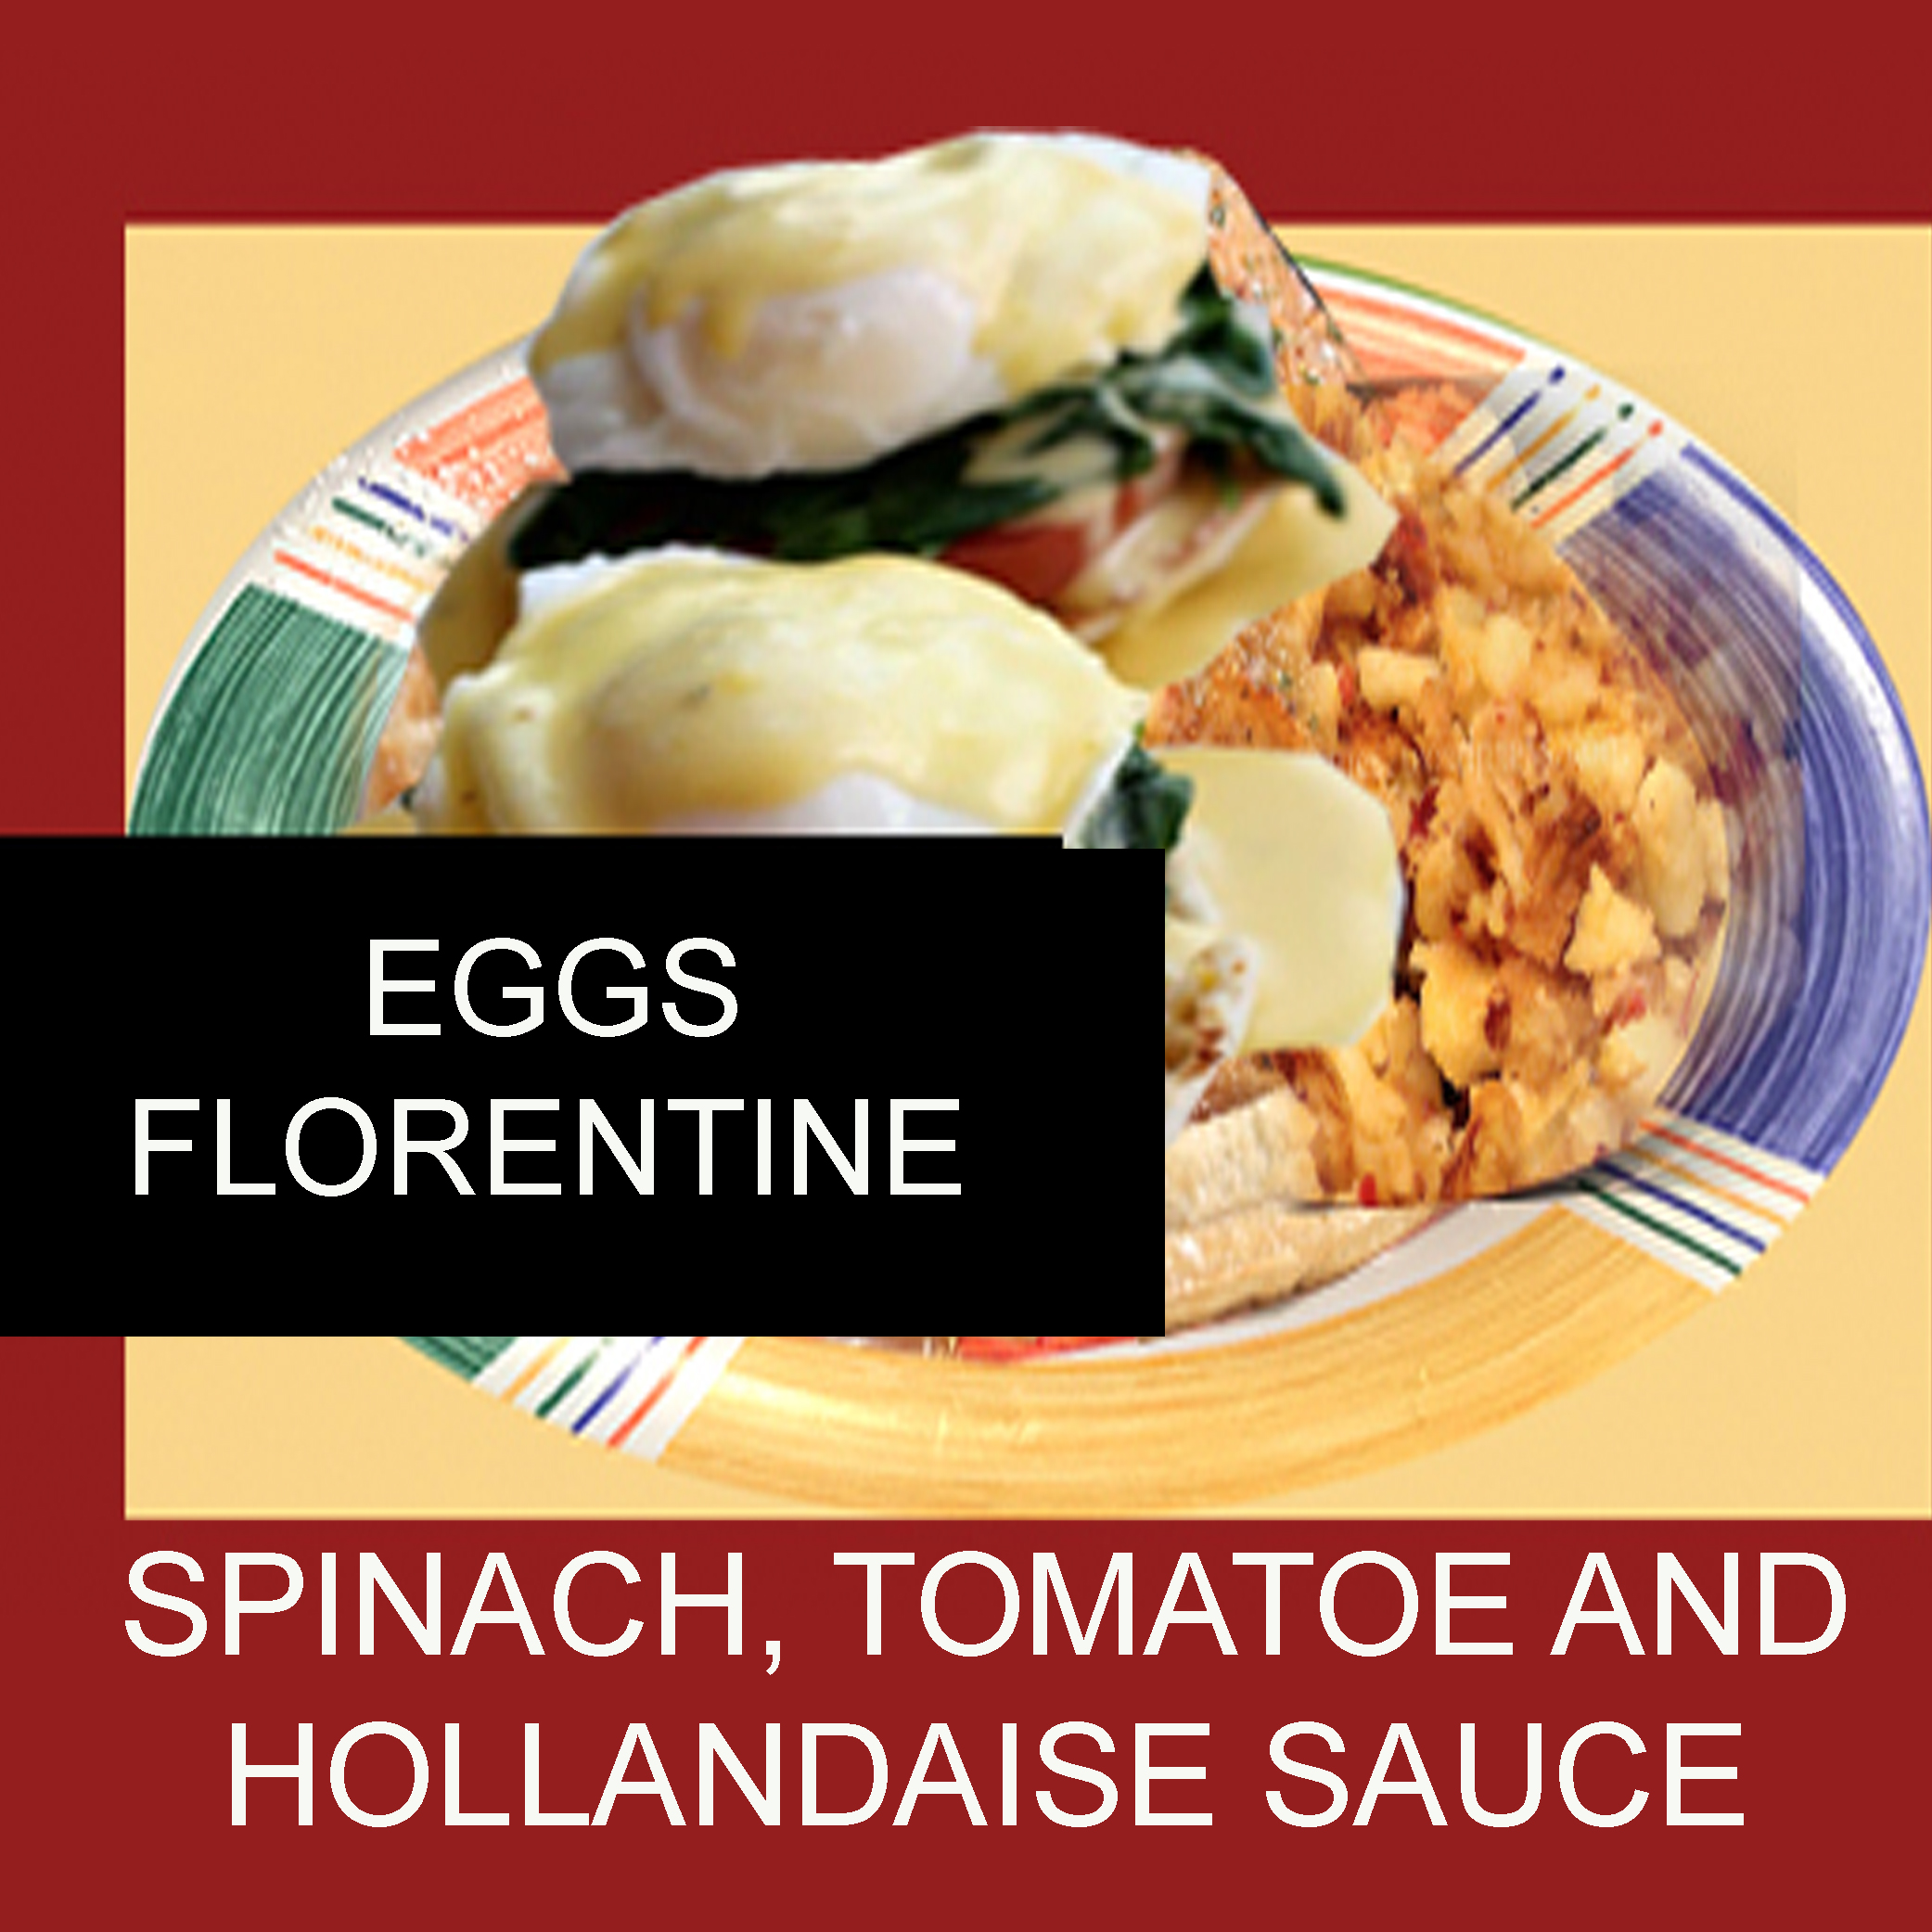 eggs Florentine spinach tomato and hollandaise sauce